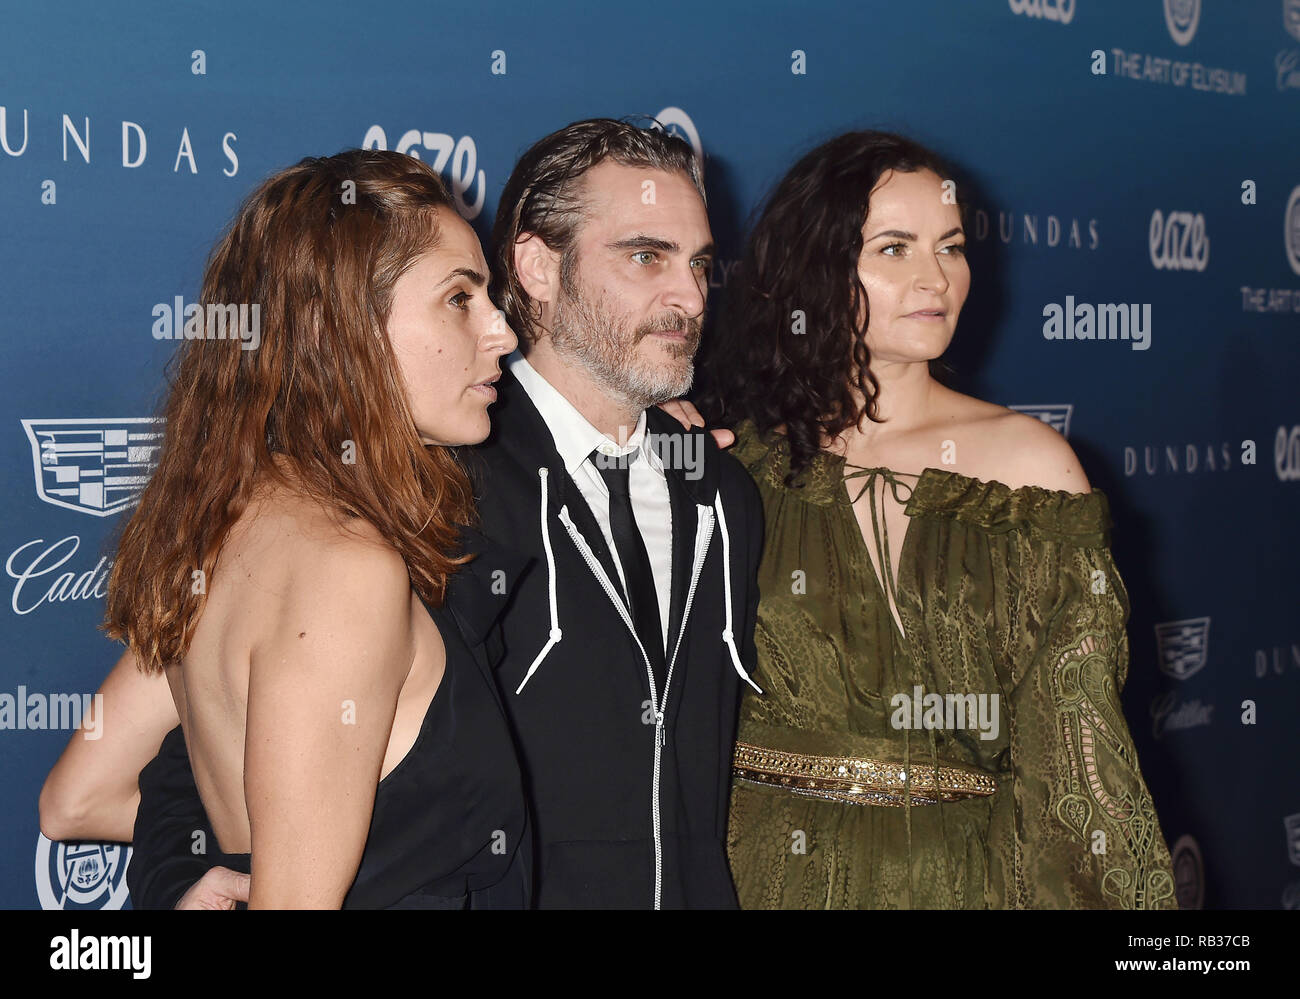 Los Angeles, United States. 05th Jan, 2019. LOS ANGELES, CA - JANUARY 05: (L-R) Summer Phoenix, Joaquin Phoenix and Rain Phoenix attend Michael Muller's HEAVEN, presented by The Art of Elysium at a private venue on January 5, 2019 in Los Angeles, California. Credit: Jeffrey Mayer/Alamy Live News - Stock Image